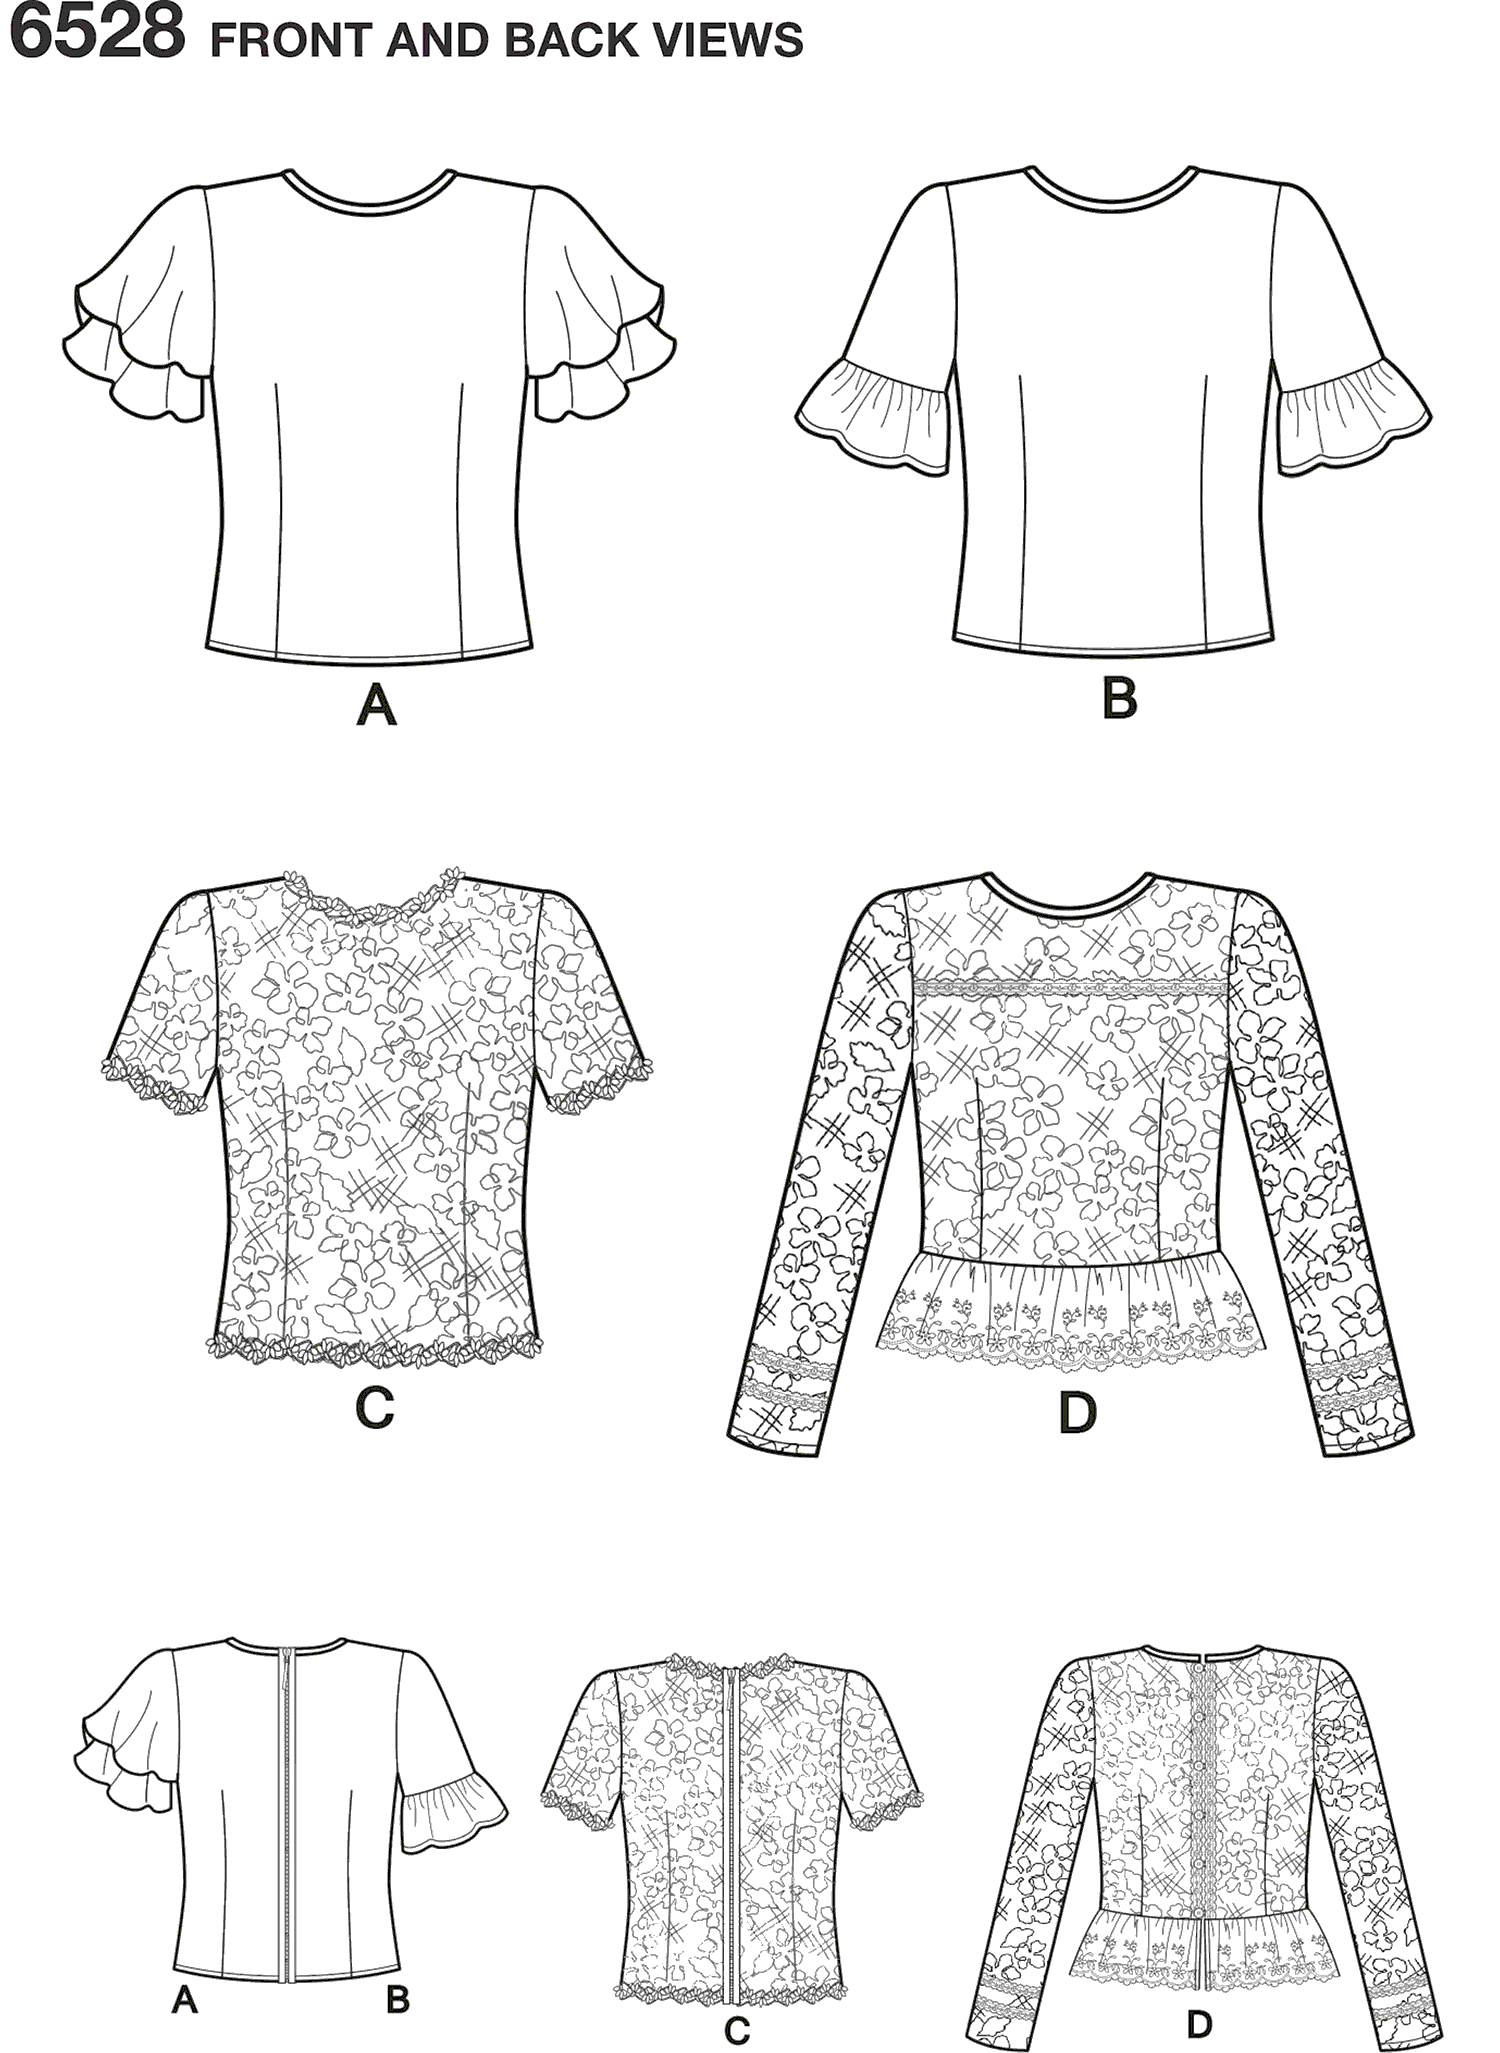 New Look Pattern 6528 Womens Tops with Sleeve and Trim Variations Line Art From Patternsandplains.com